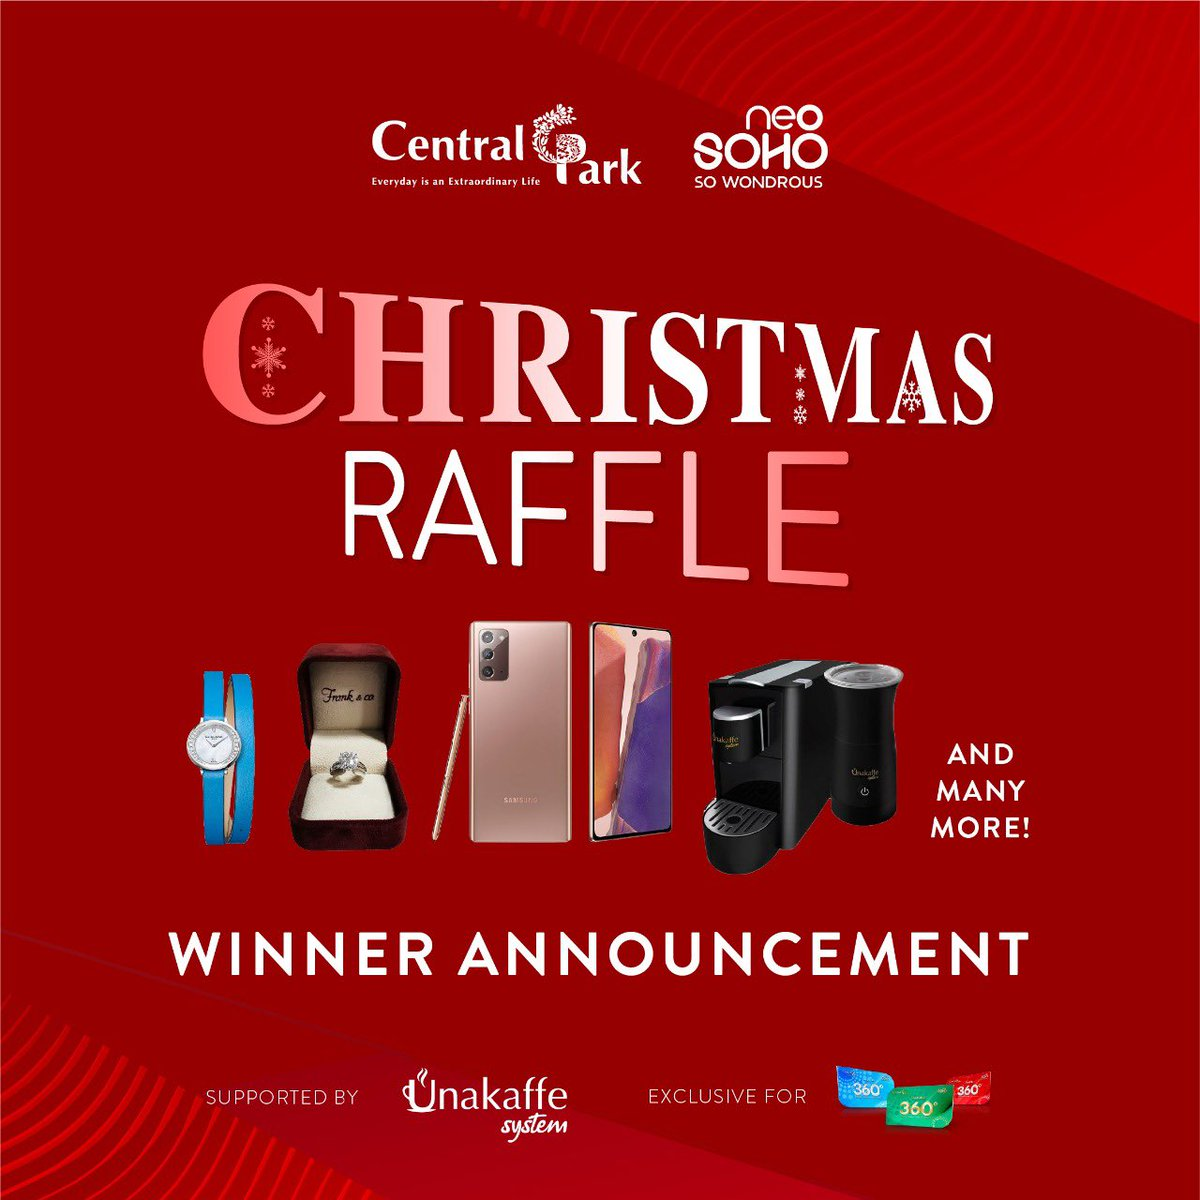 Central Park Christmas 2021 Central Park Mall On Twitter Raffle Of The Month Winner Announcement Exclusive For 360 Club Members 21 Nov 2020 3 Jan 2021 Congratulations For All The Winners Spend Min